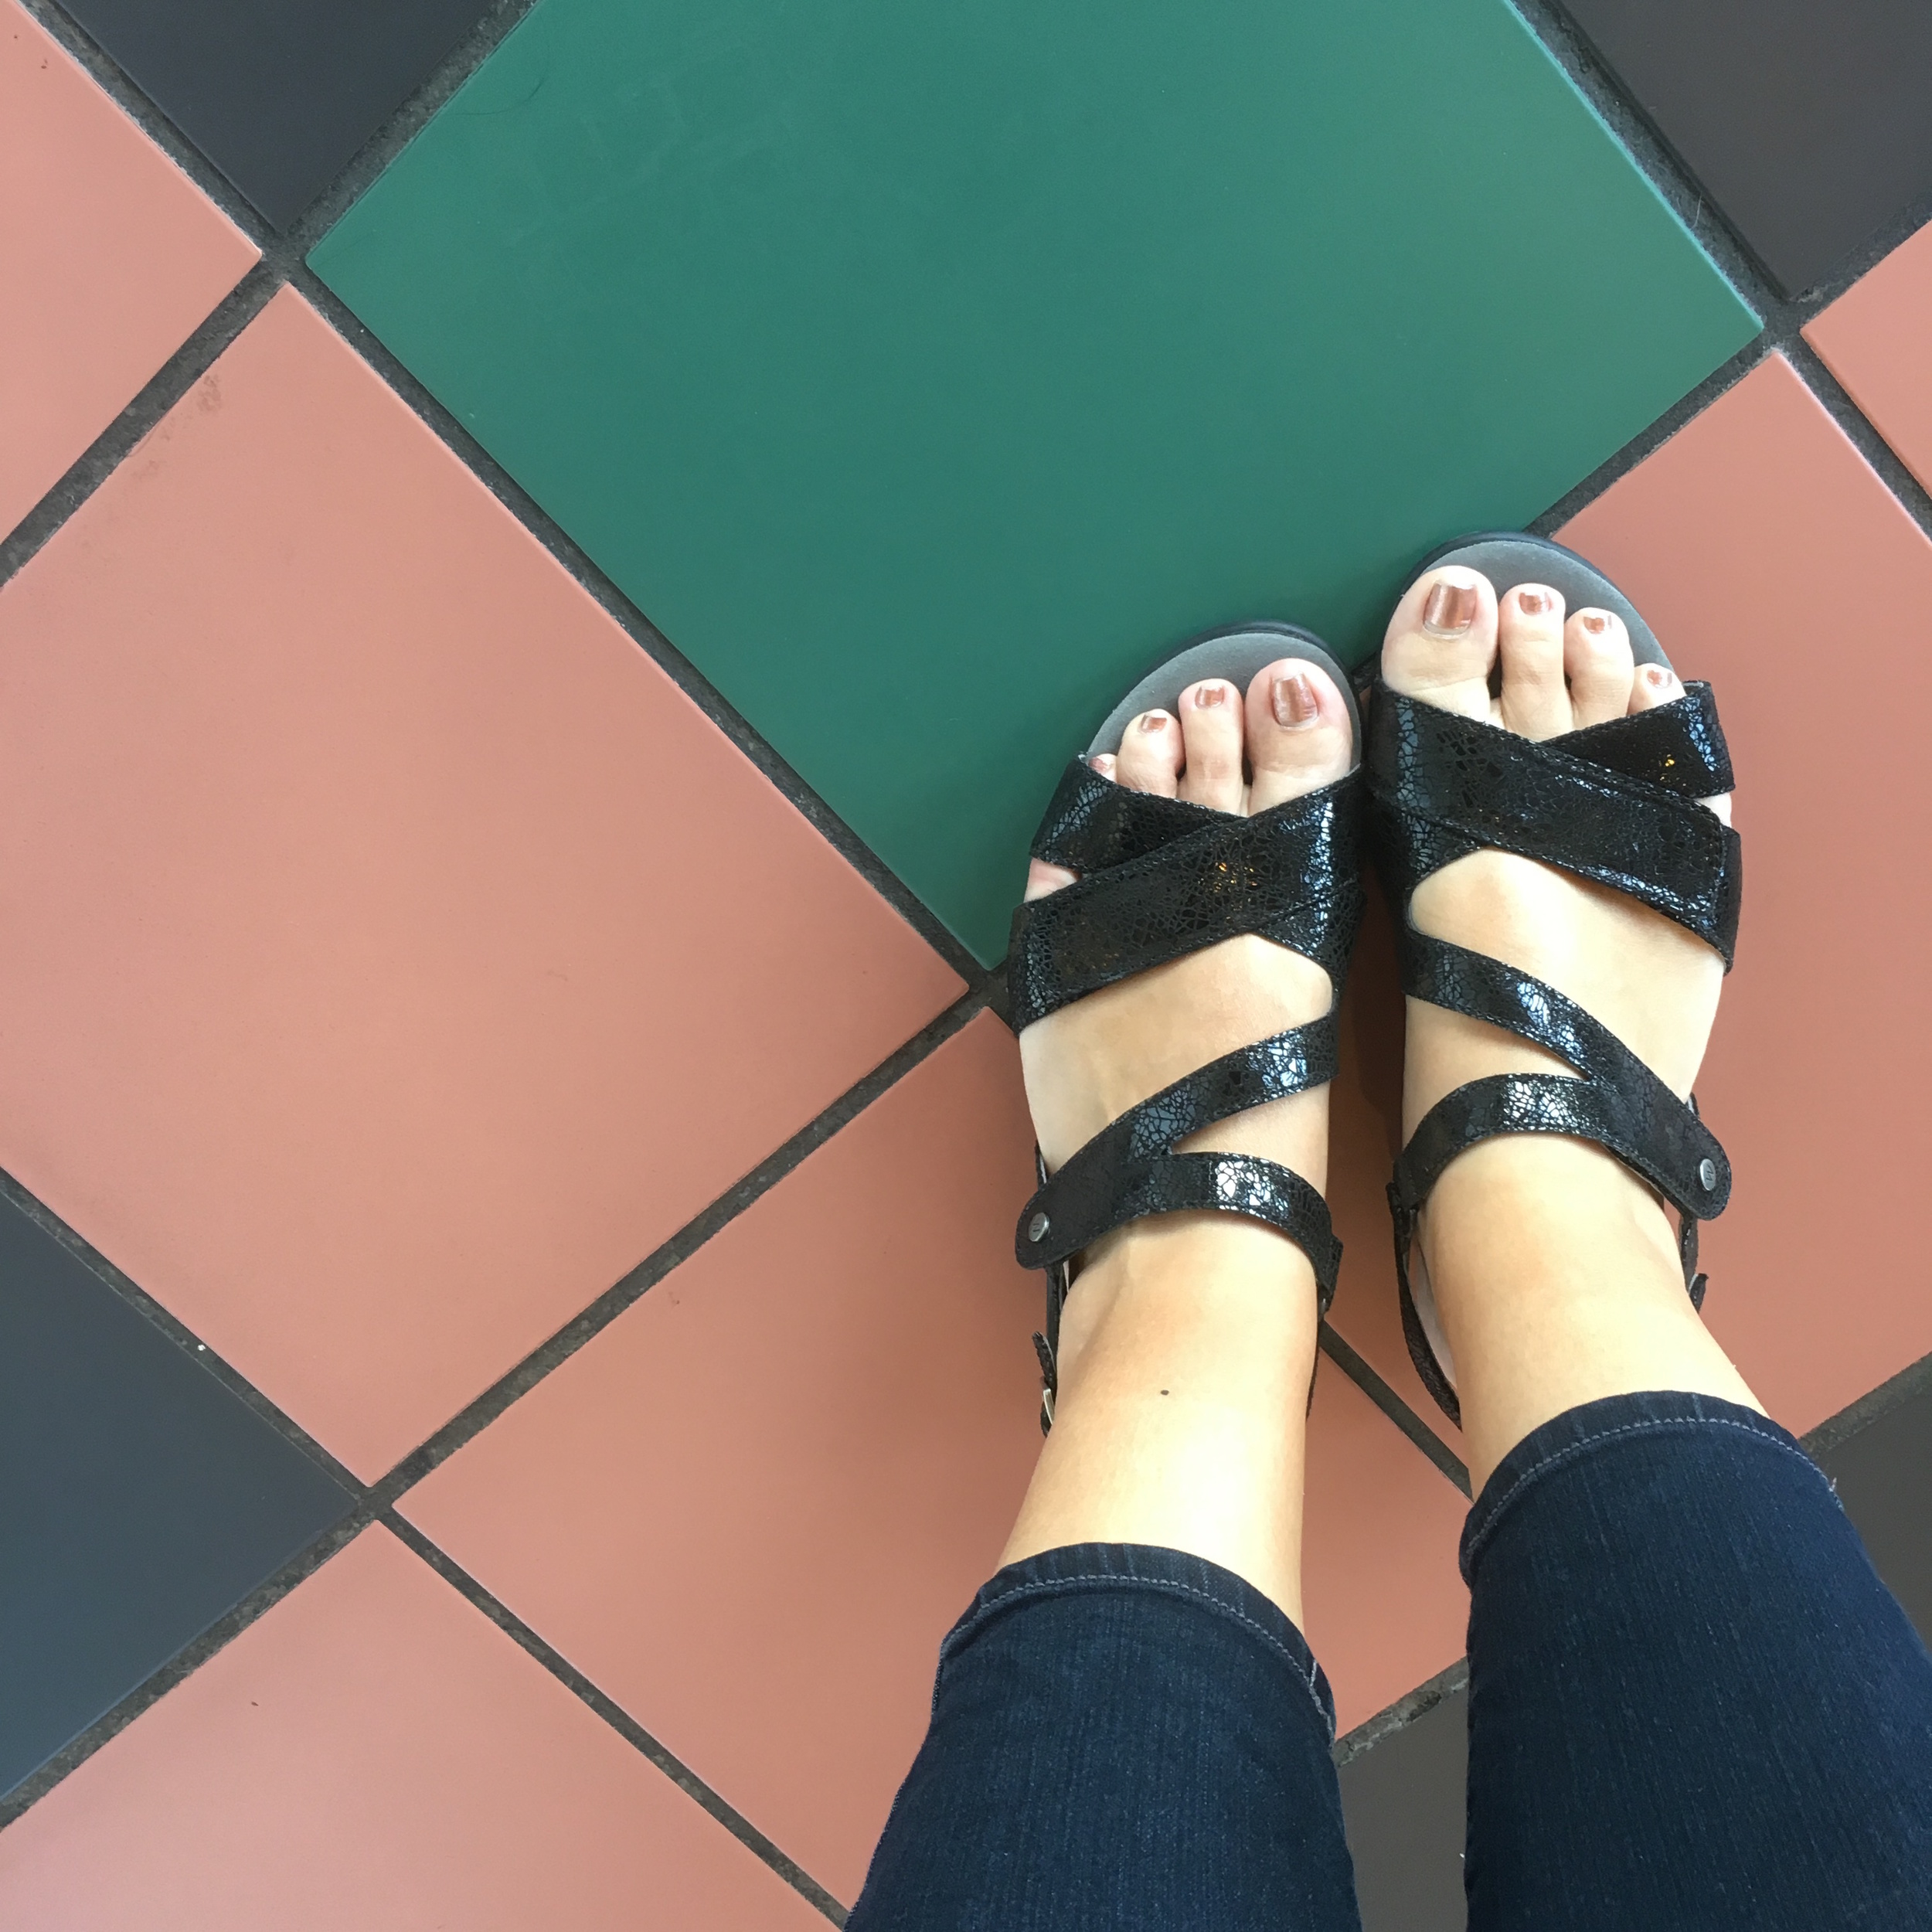 New sandals that sparkle